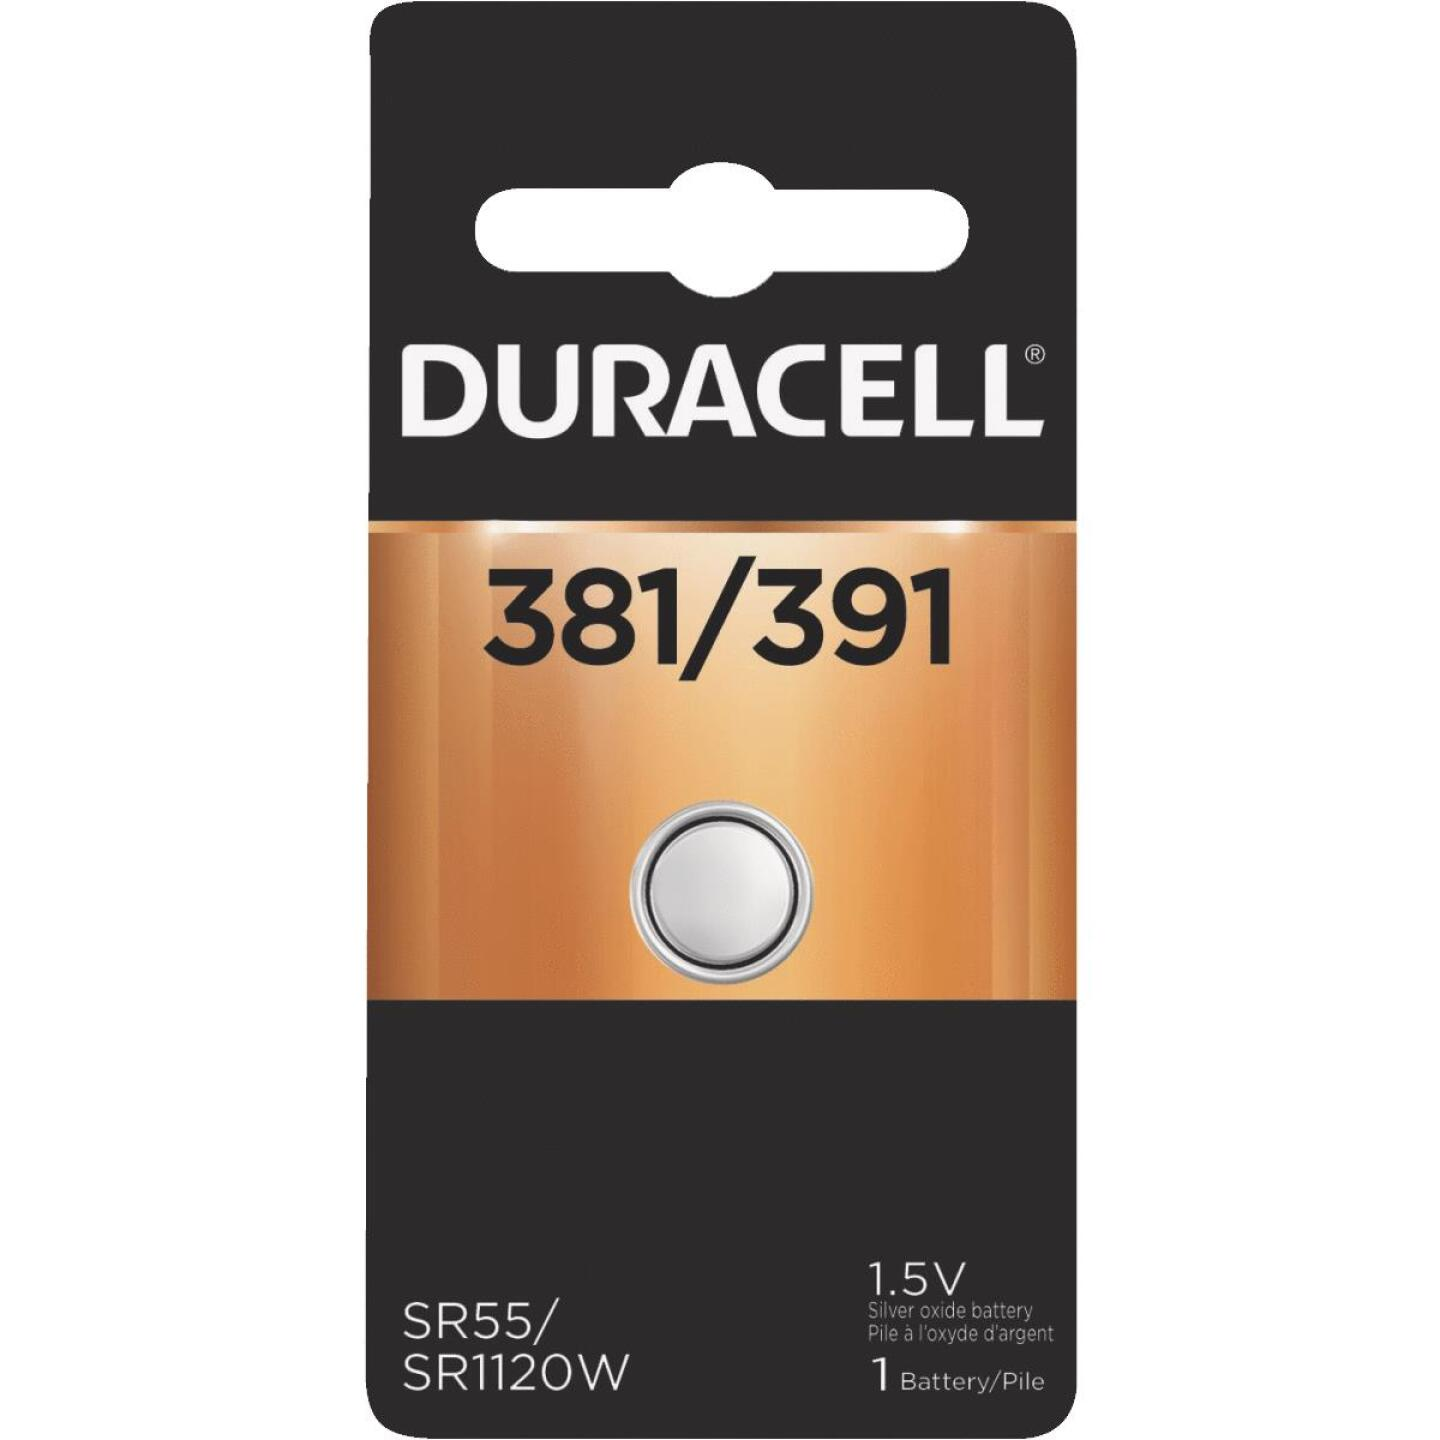 Duracell 381/391 Silver Oxide Button Cell Battery Image 1